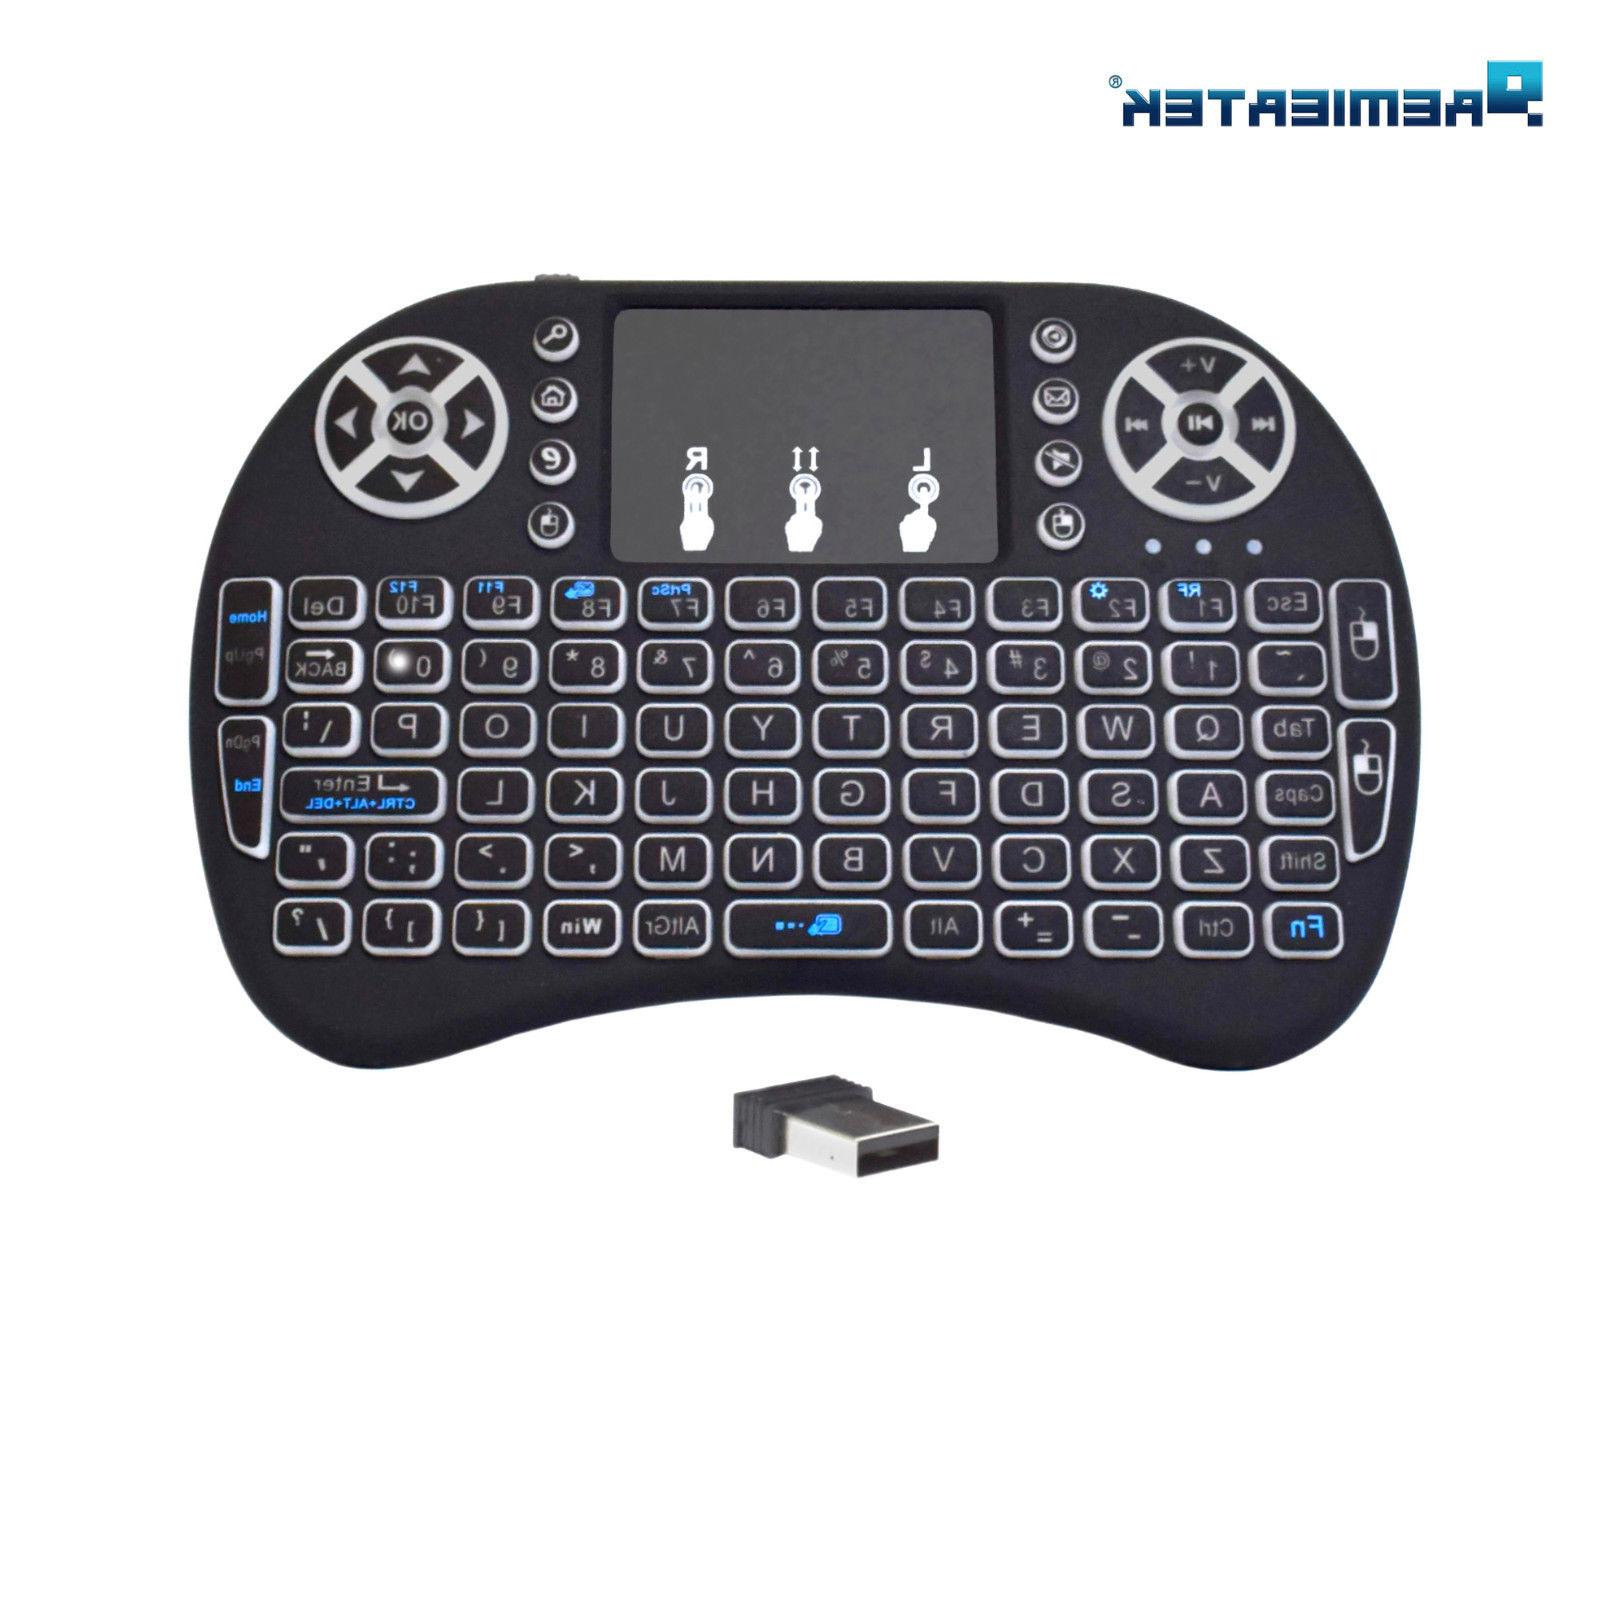 Mini Keyboard Remote for Raspberry LG Smart TV Android TV